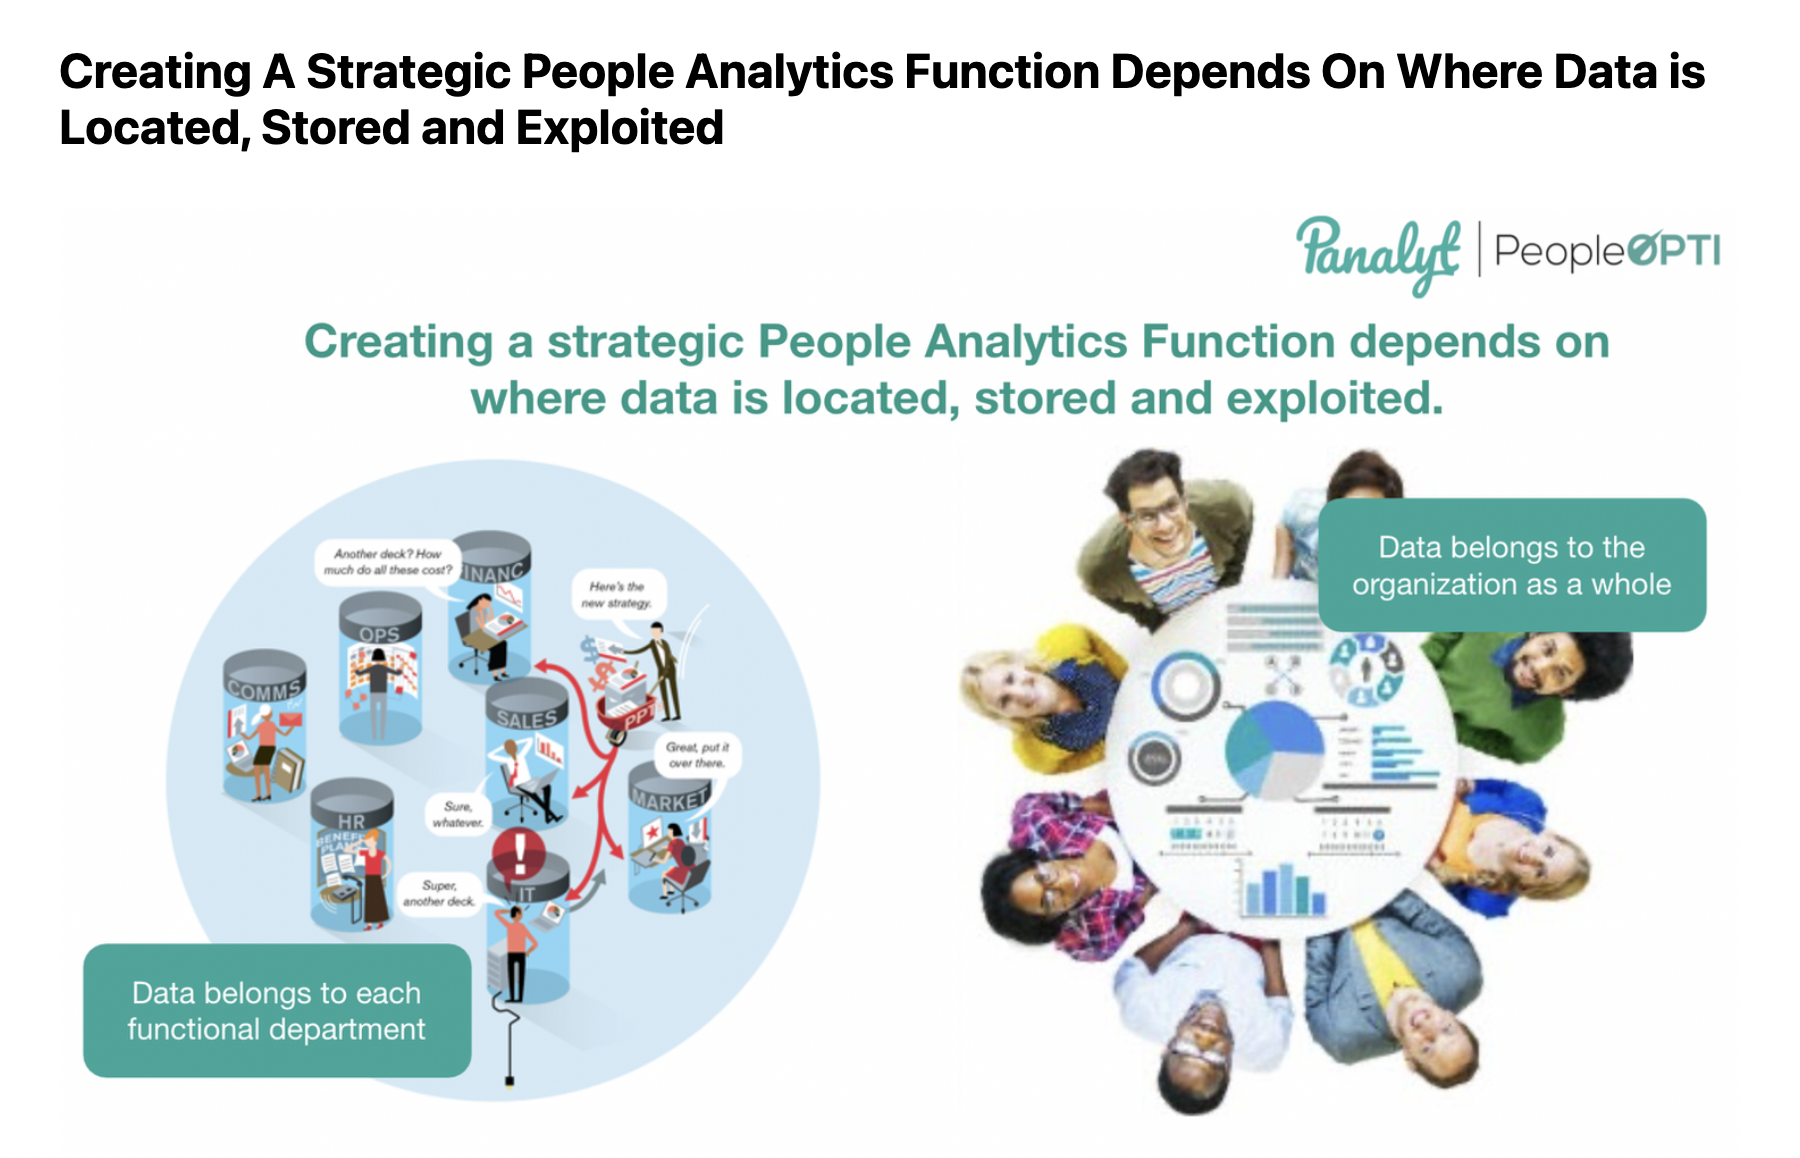 Building a Strategic People Analytics Function